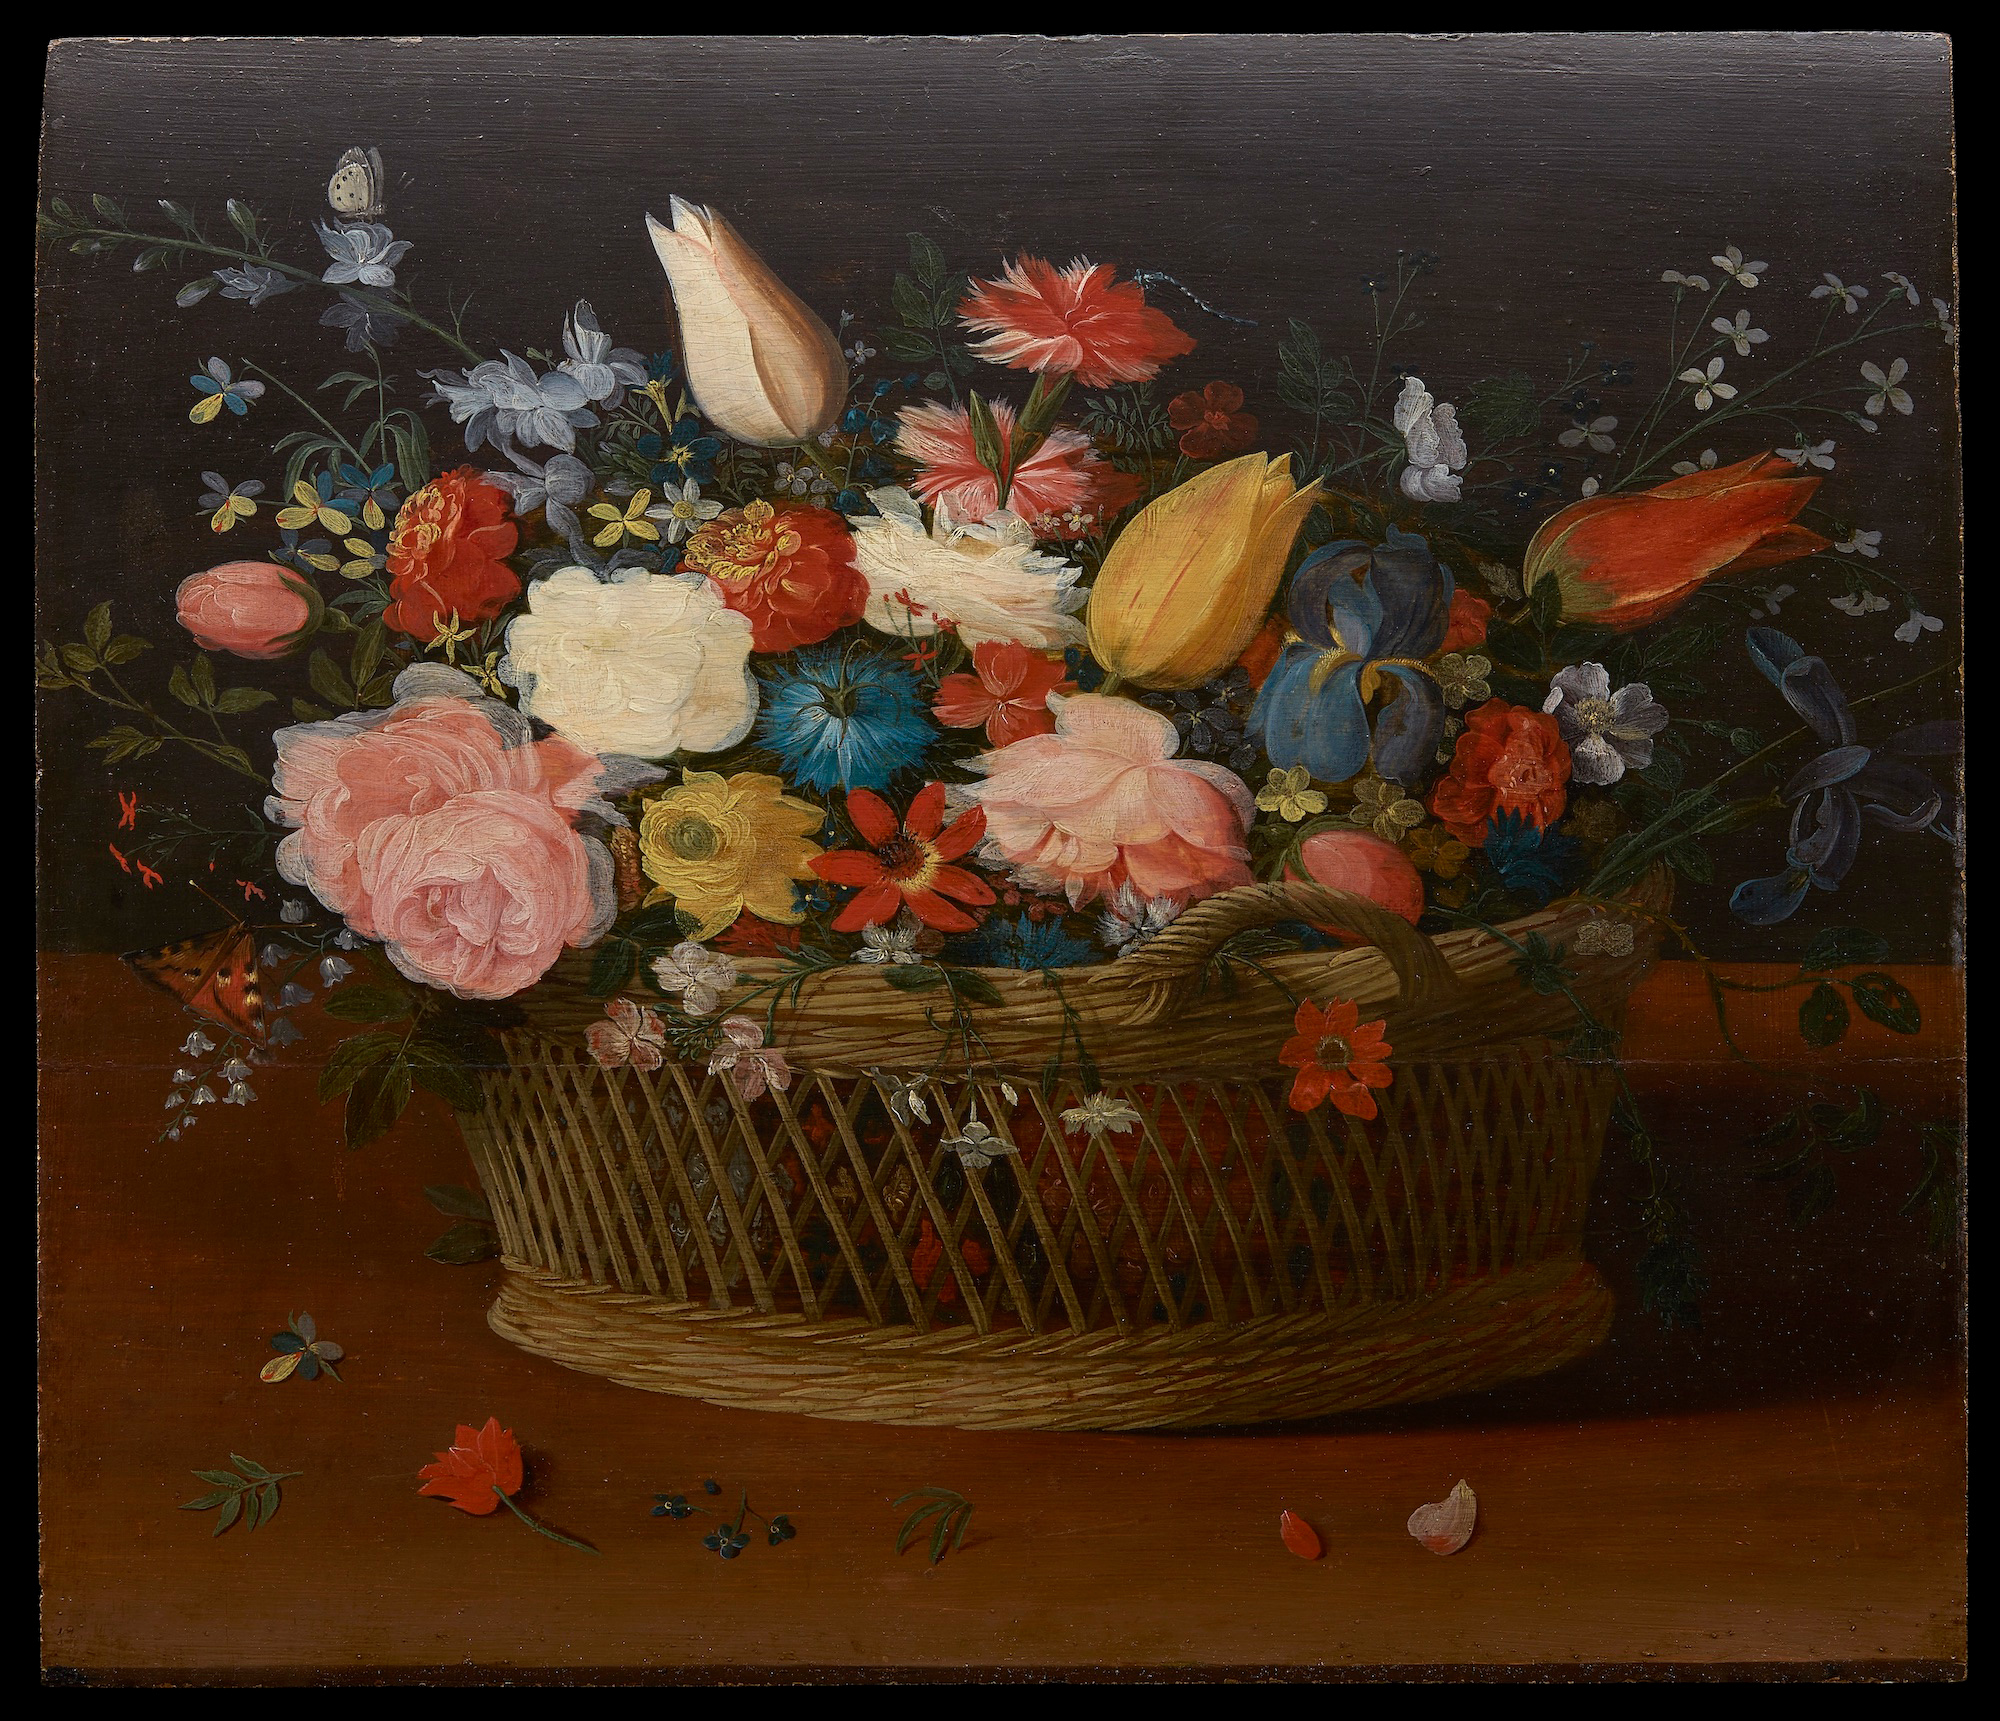 Still Life with Flowers, c 1660, oil on panel by Jan van Kessel II (Courtesy of Commission for Looted Art in Europe)